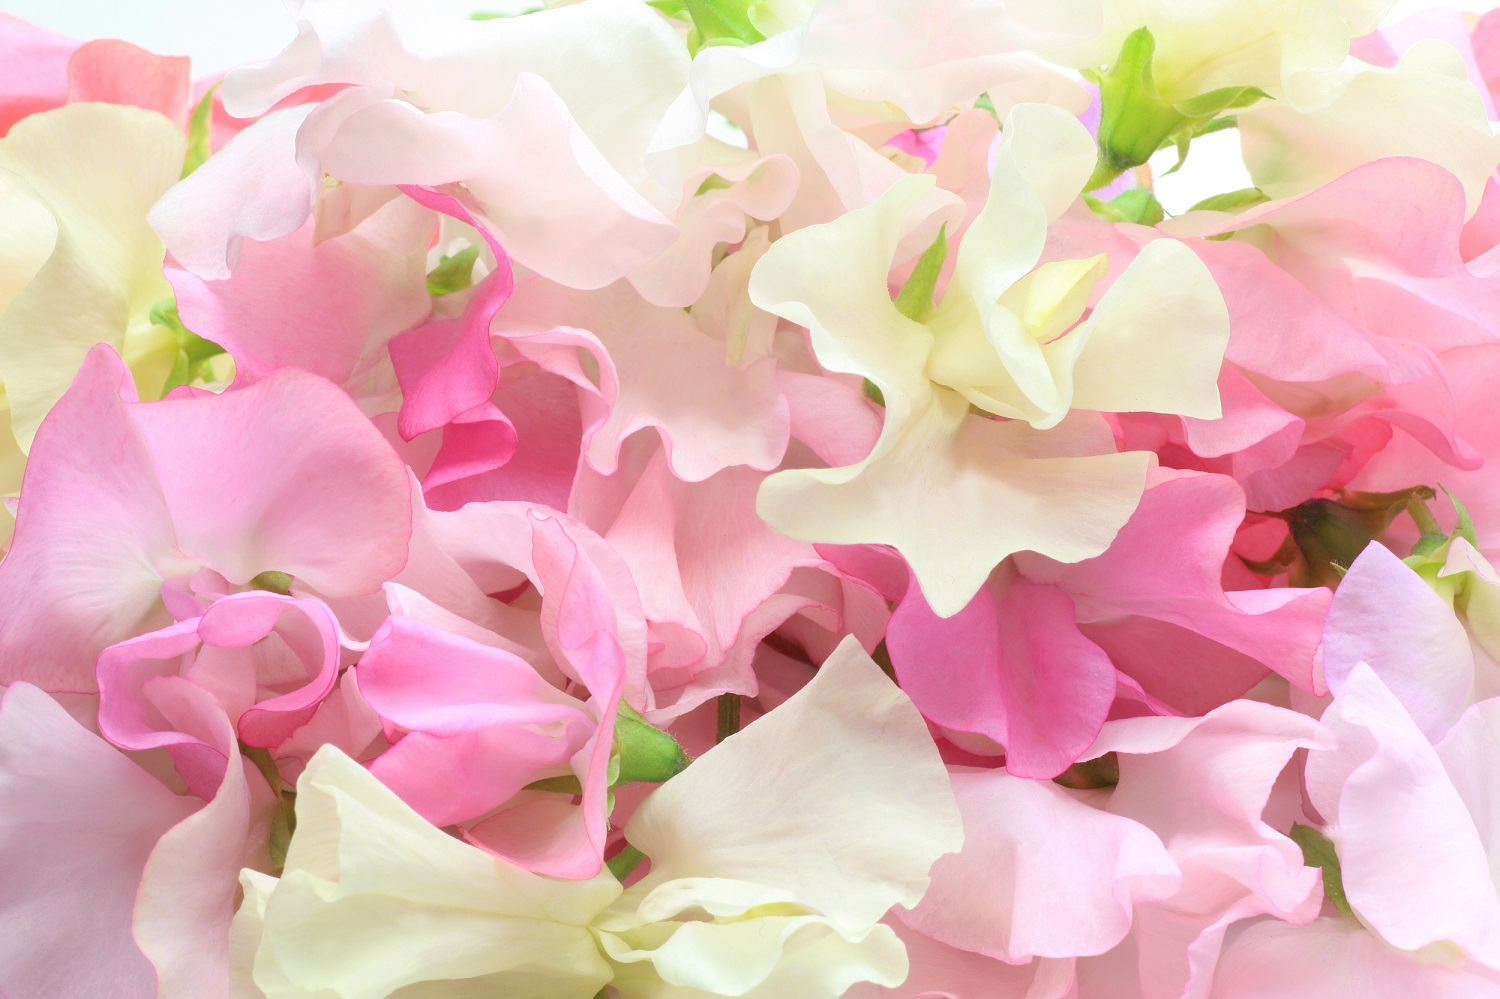 Sweet Peas: All About Sweet Peas